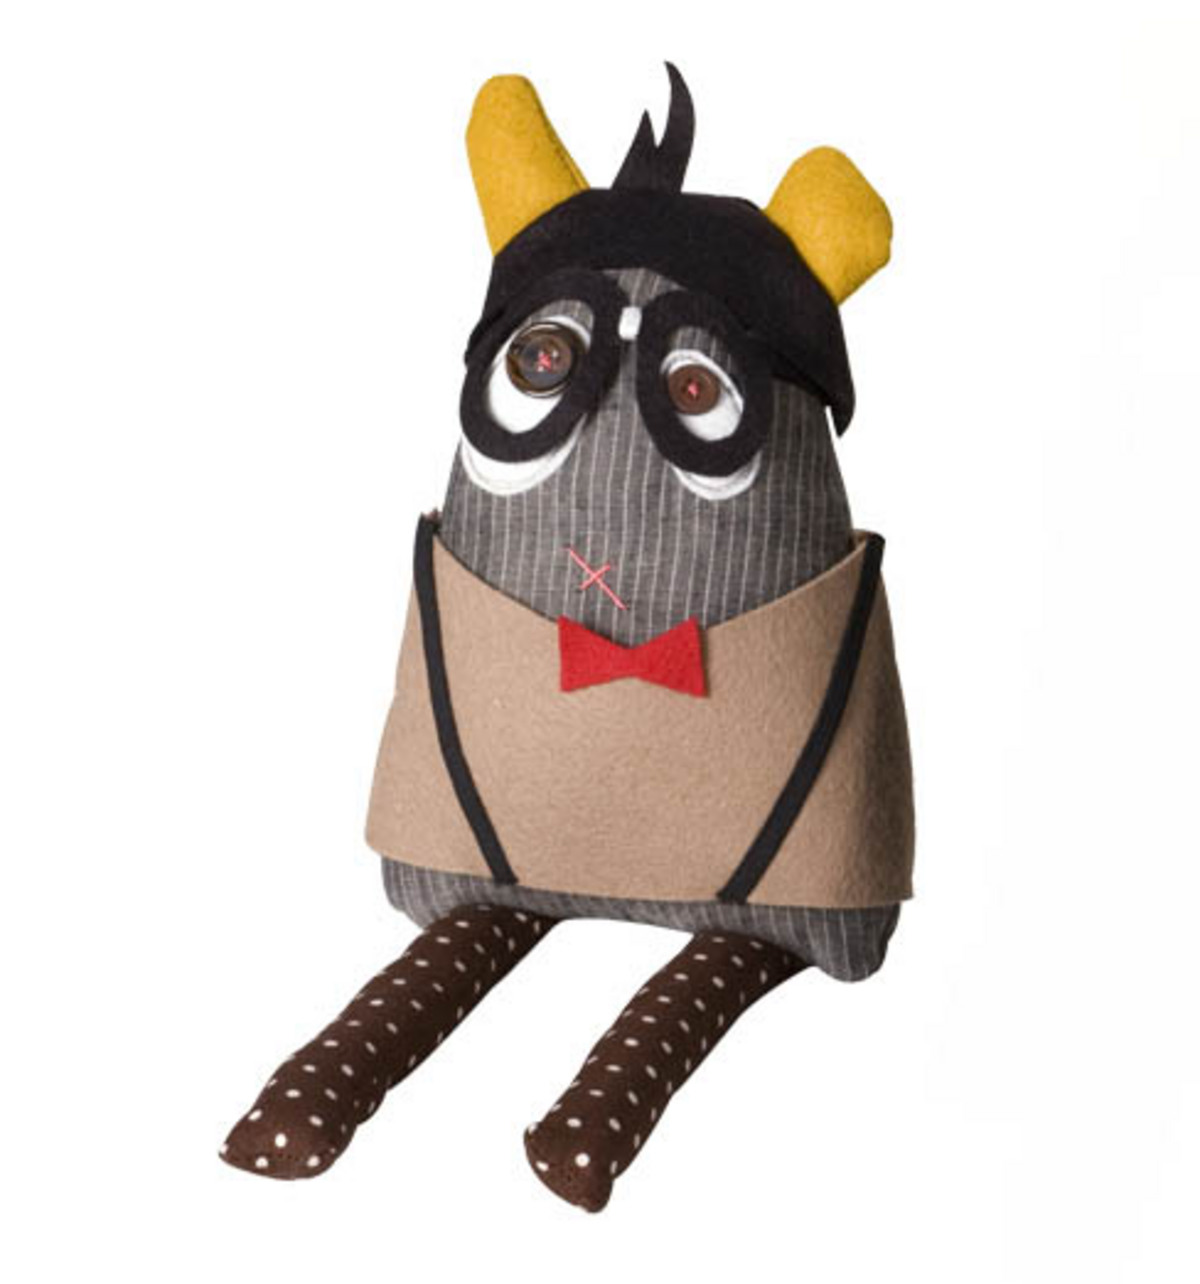 Geek Costume for Monster Doll